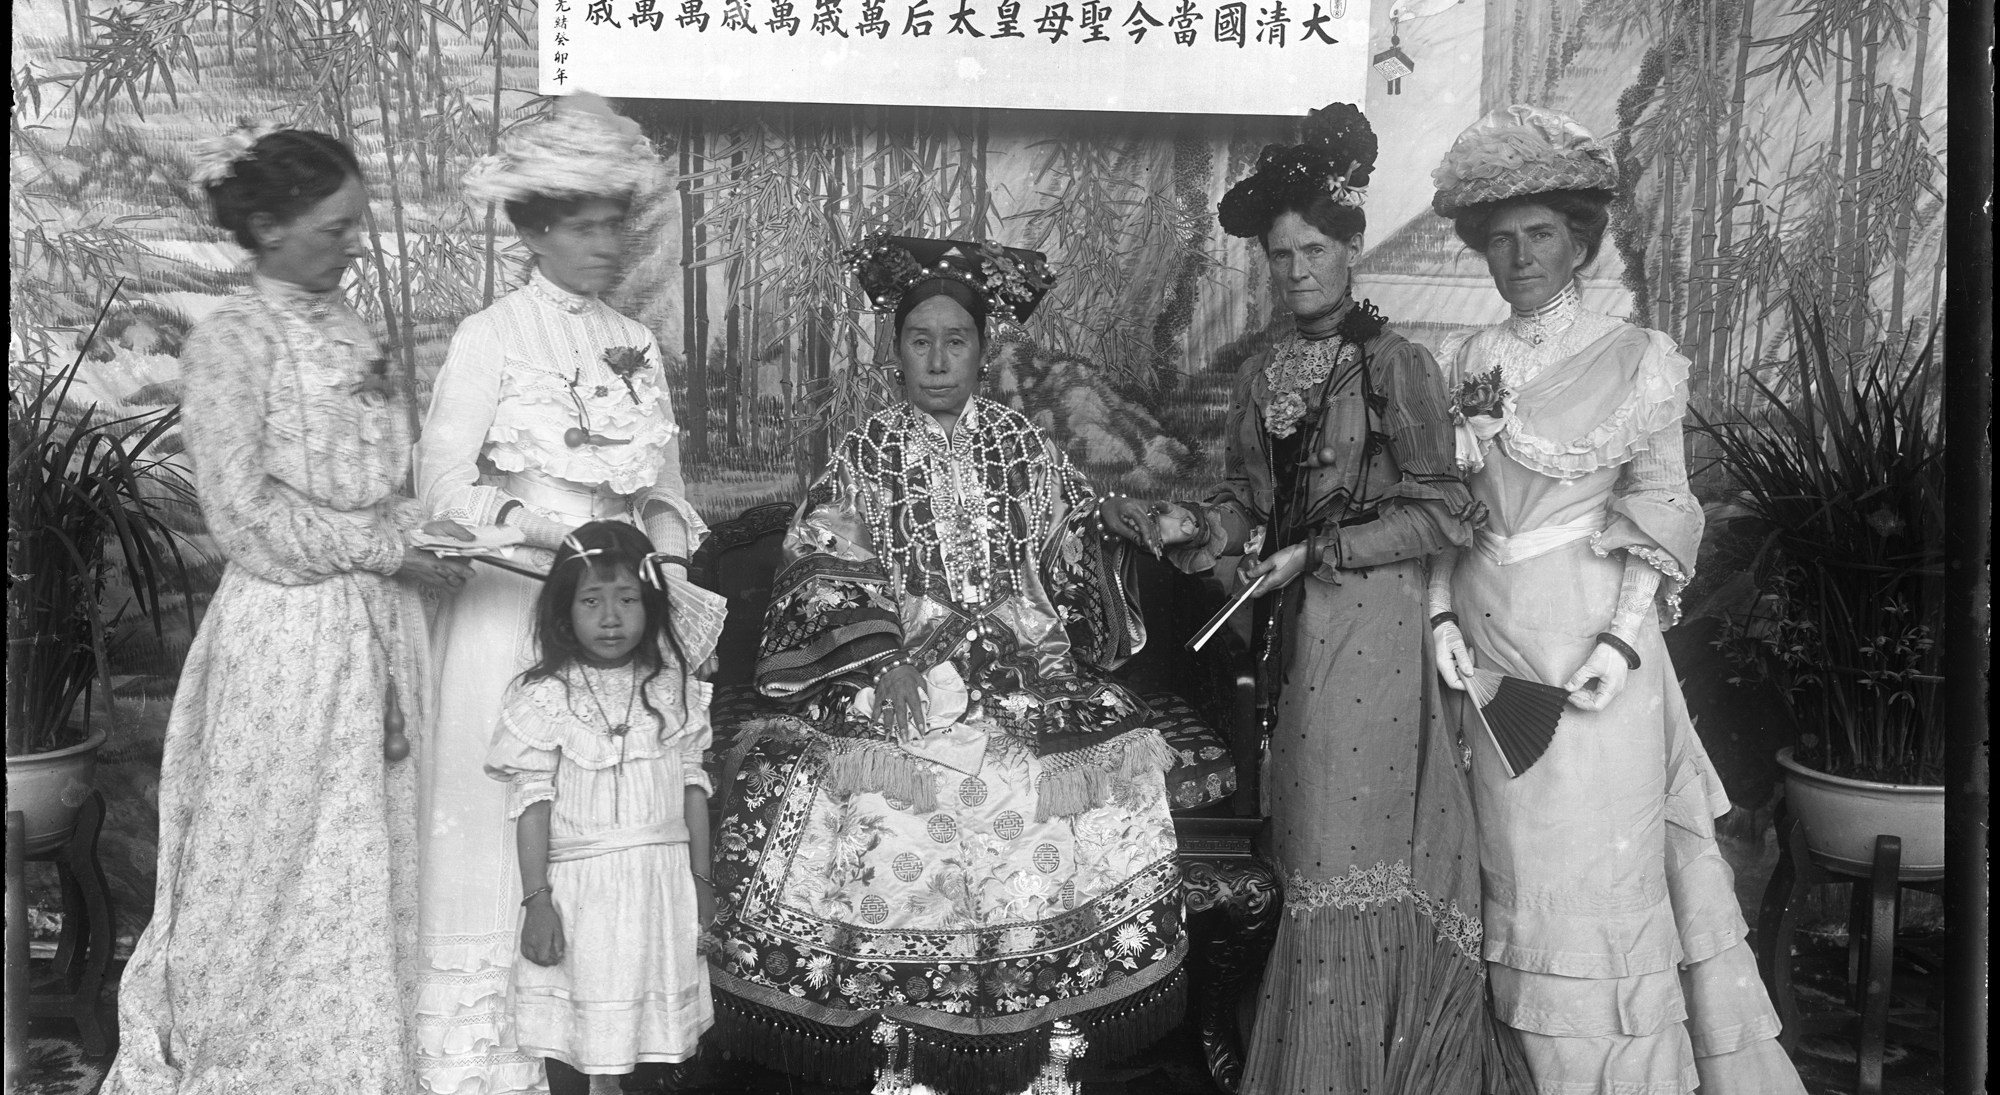 a woman sitting surrounded by 4 other women standing